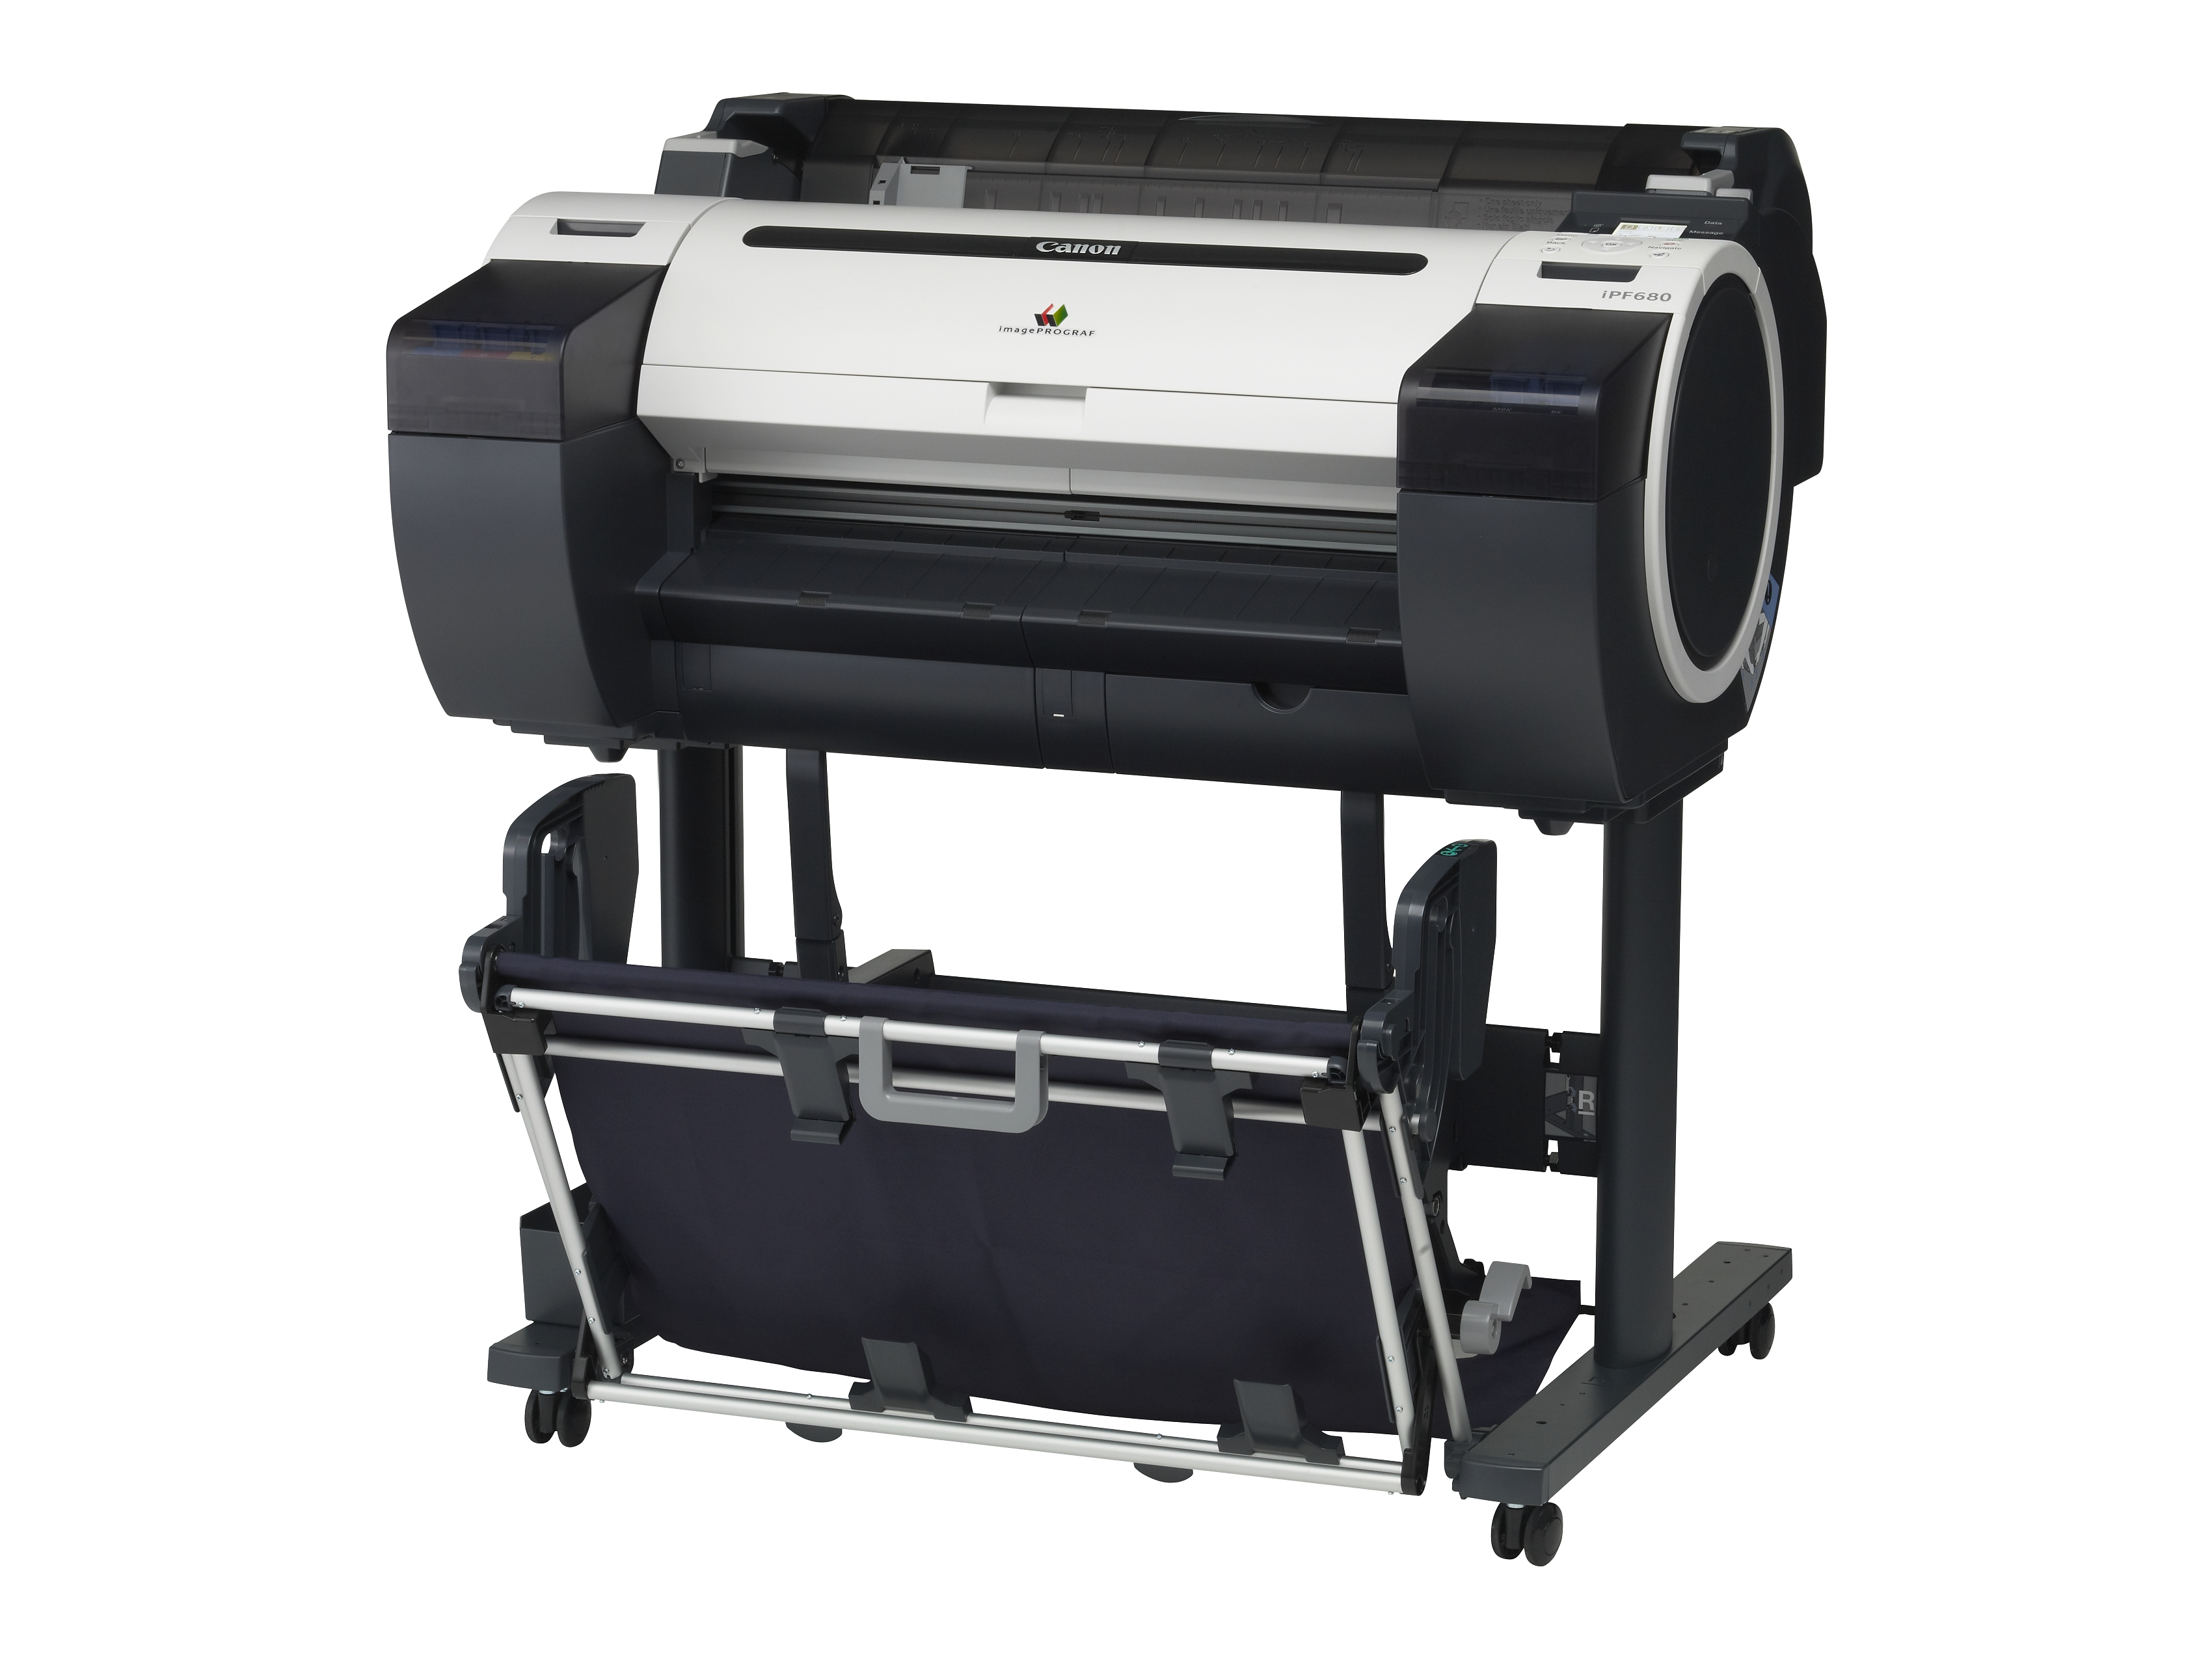 Large Format Inkjet Cad Technical Plotters Connect Up To Four Wired Pcs And Share Internet Printers Digital Canon Ipf 680 Plotter